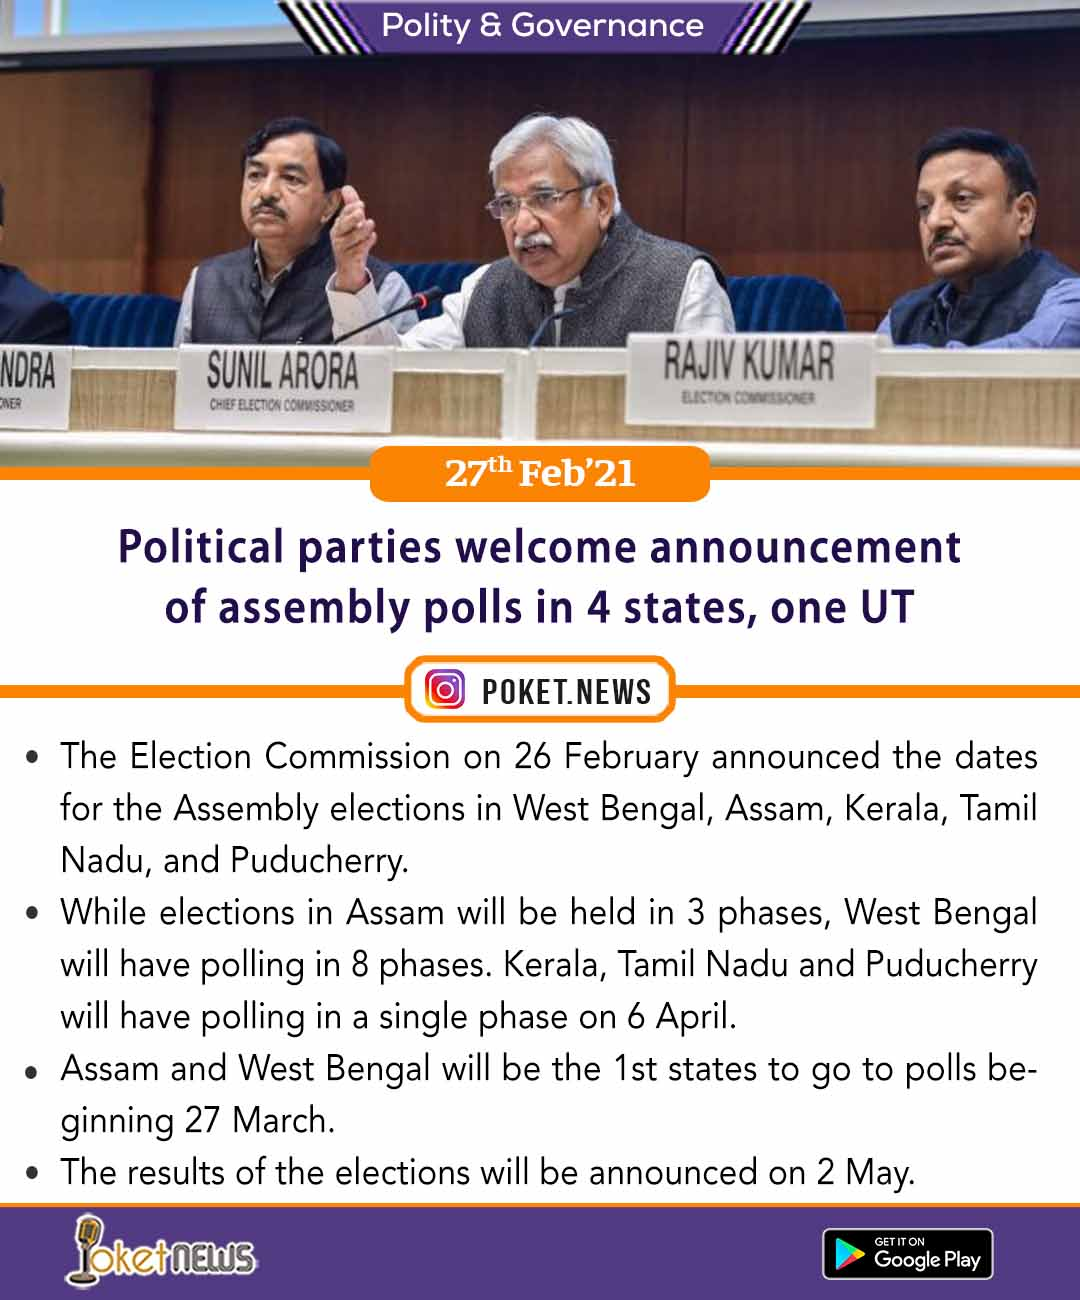 Political parties welcome announcement of assembly polls in 4 states, one UT